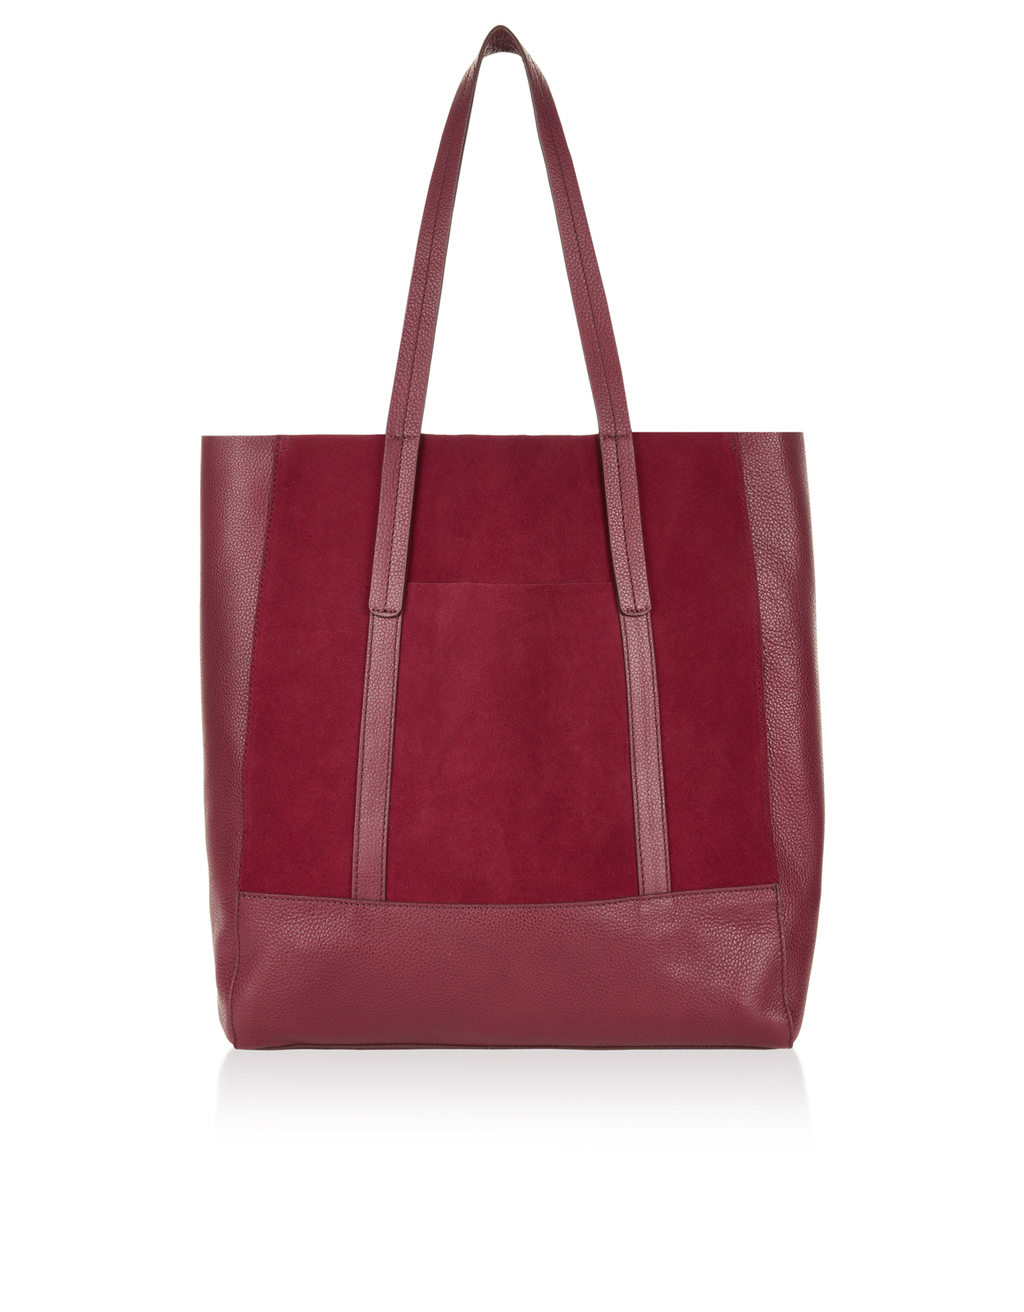 Carina Suede & Leather Shopper Bag - occasions: casual, creative work; type of pattern: standard; style: tote; length: handle; size: oversized; material: leather; pattern: plain; finish: plain; predominant colour: raspberry; season: s/s 2016; wardrobe: highlight